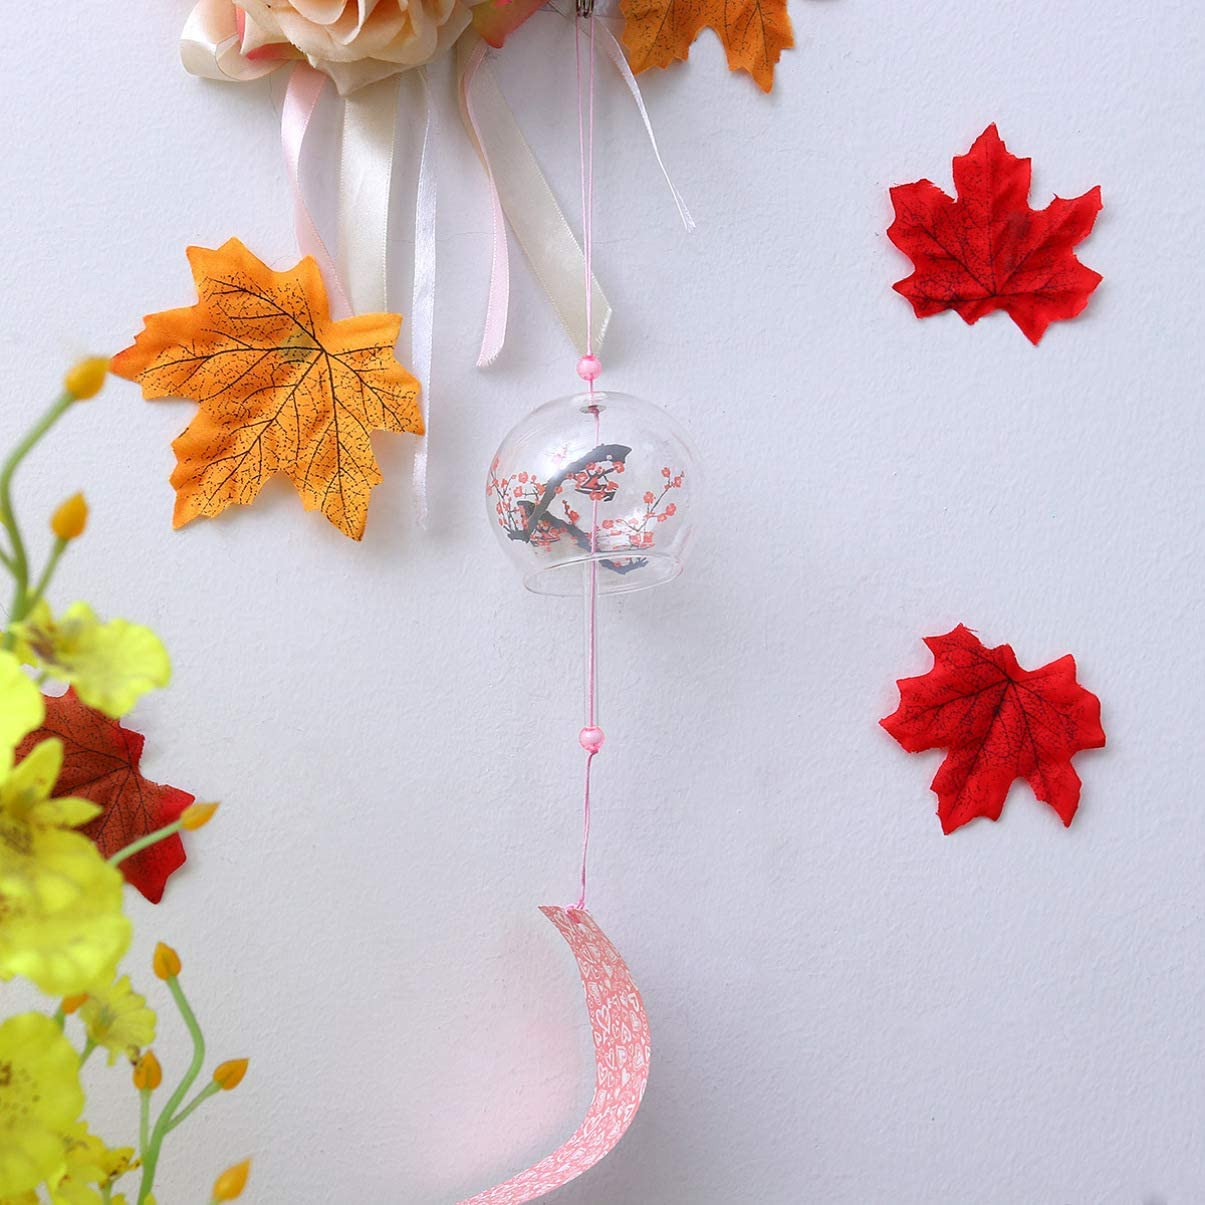 Amosfun Japanese Wind Chime Wintersweet Glass Wind Bells Decorative Hanging Wind Chime Hanging Decor for Car Interior Home